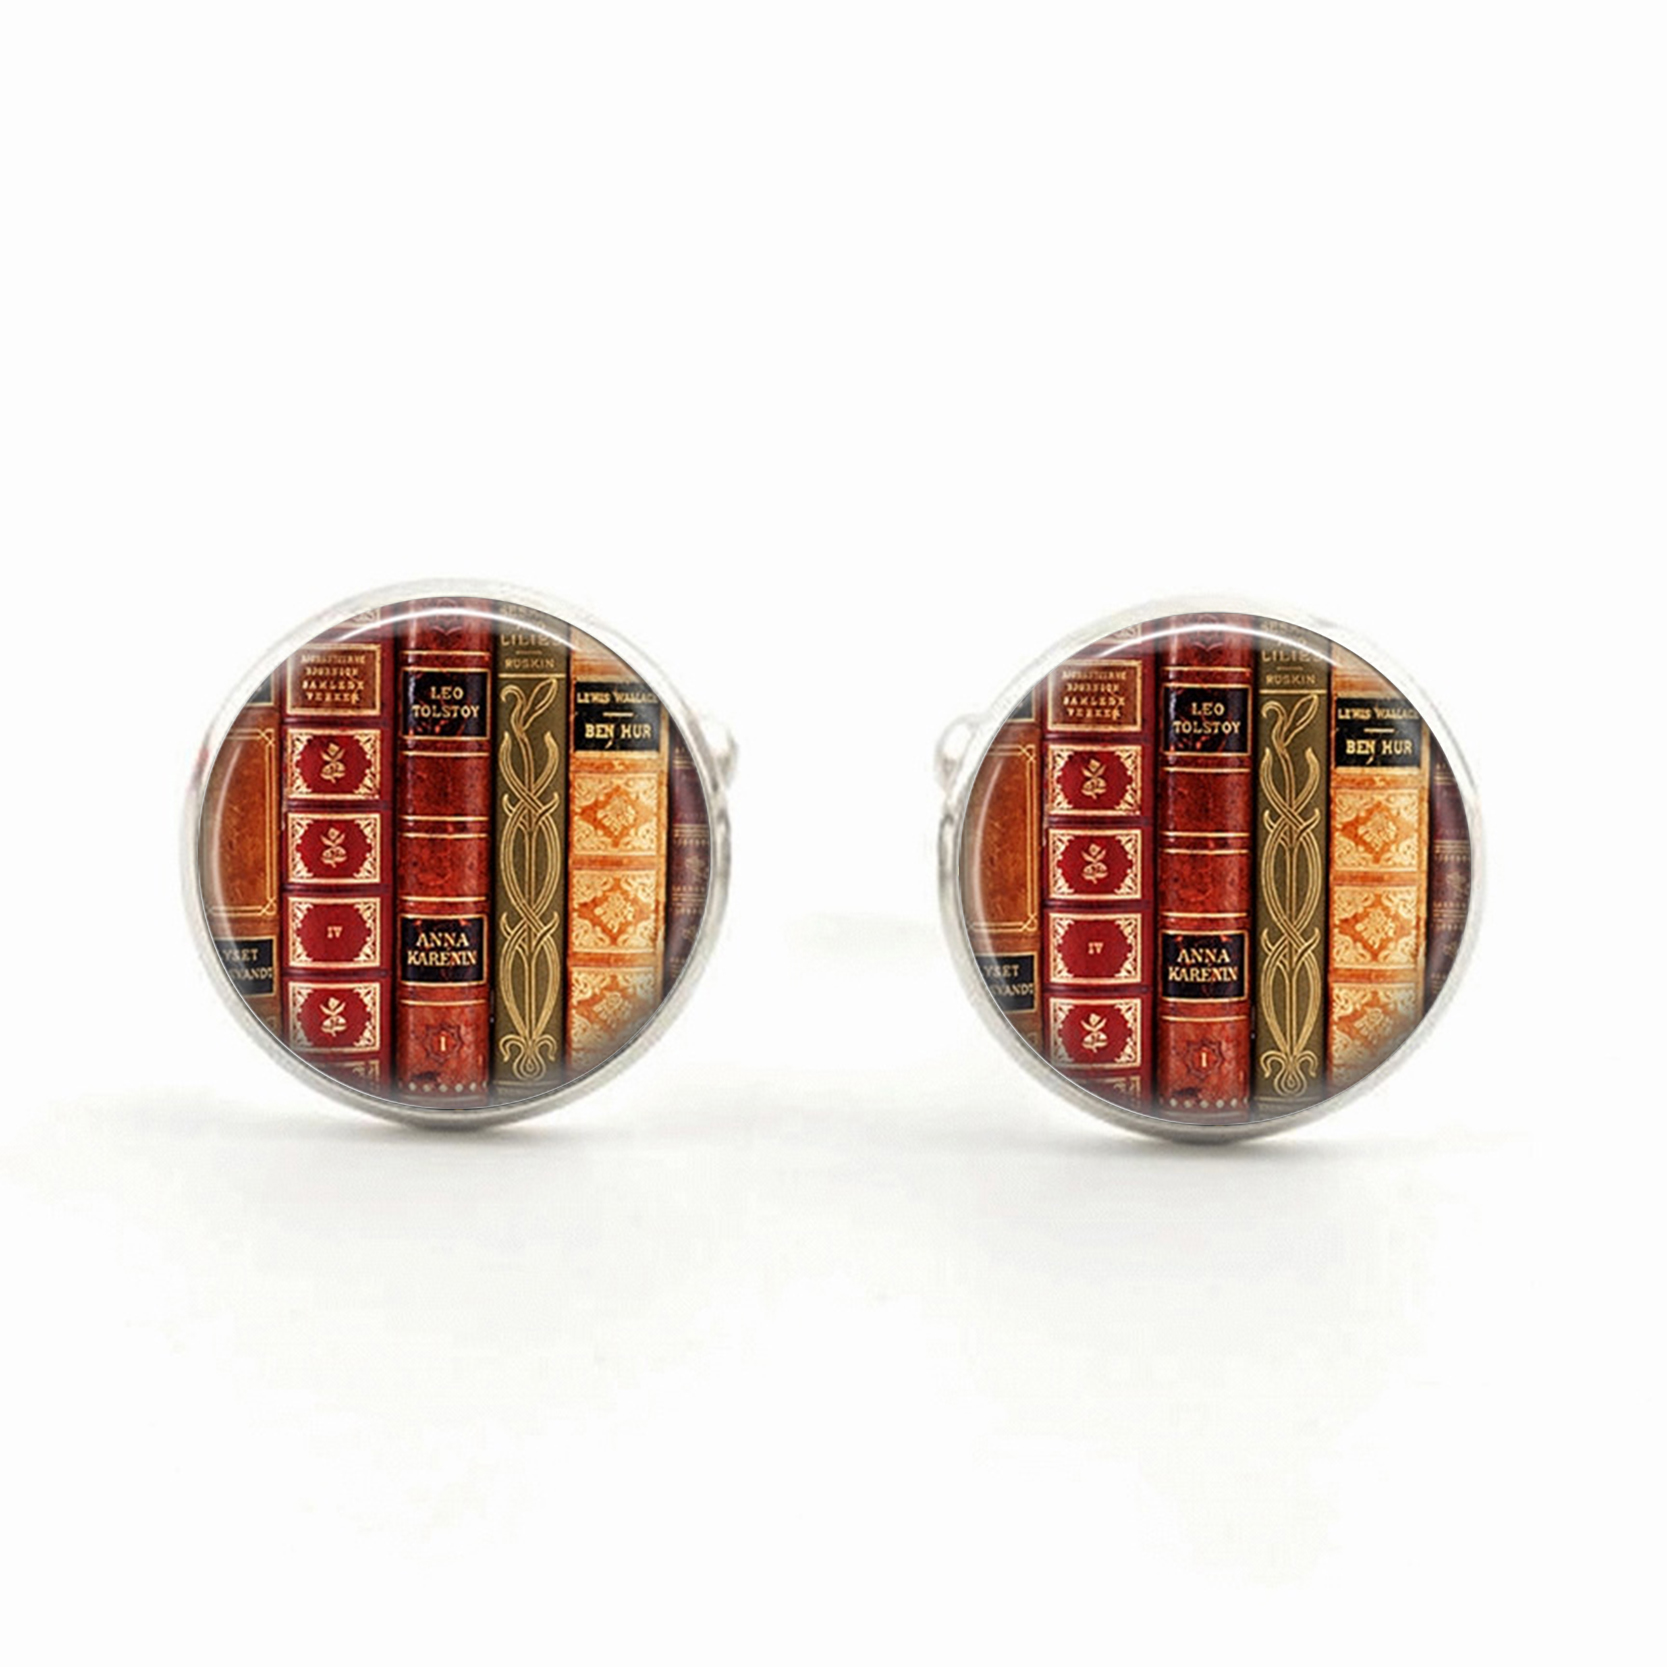 Book Cufflink Book Jewelry Cufflink Lovers Pendant Antique Book Cufflinks French Cufflinks Christmas Gift for Mens 2016 image